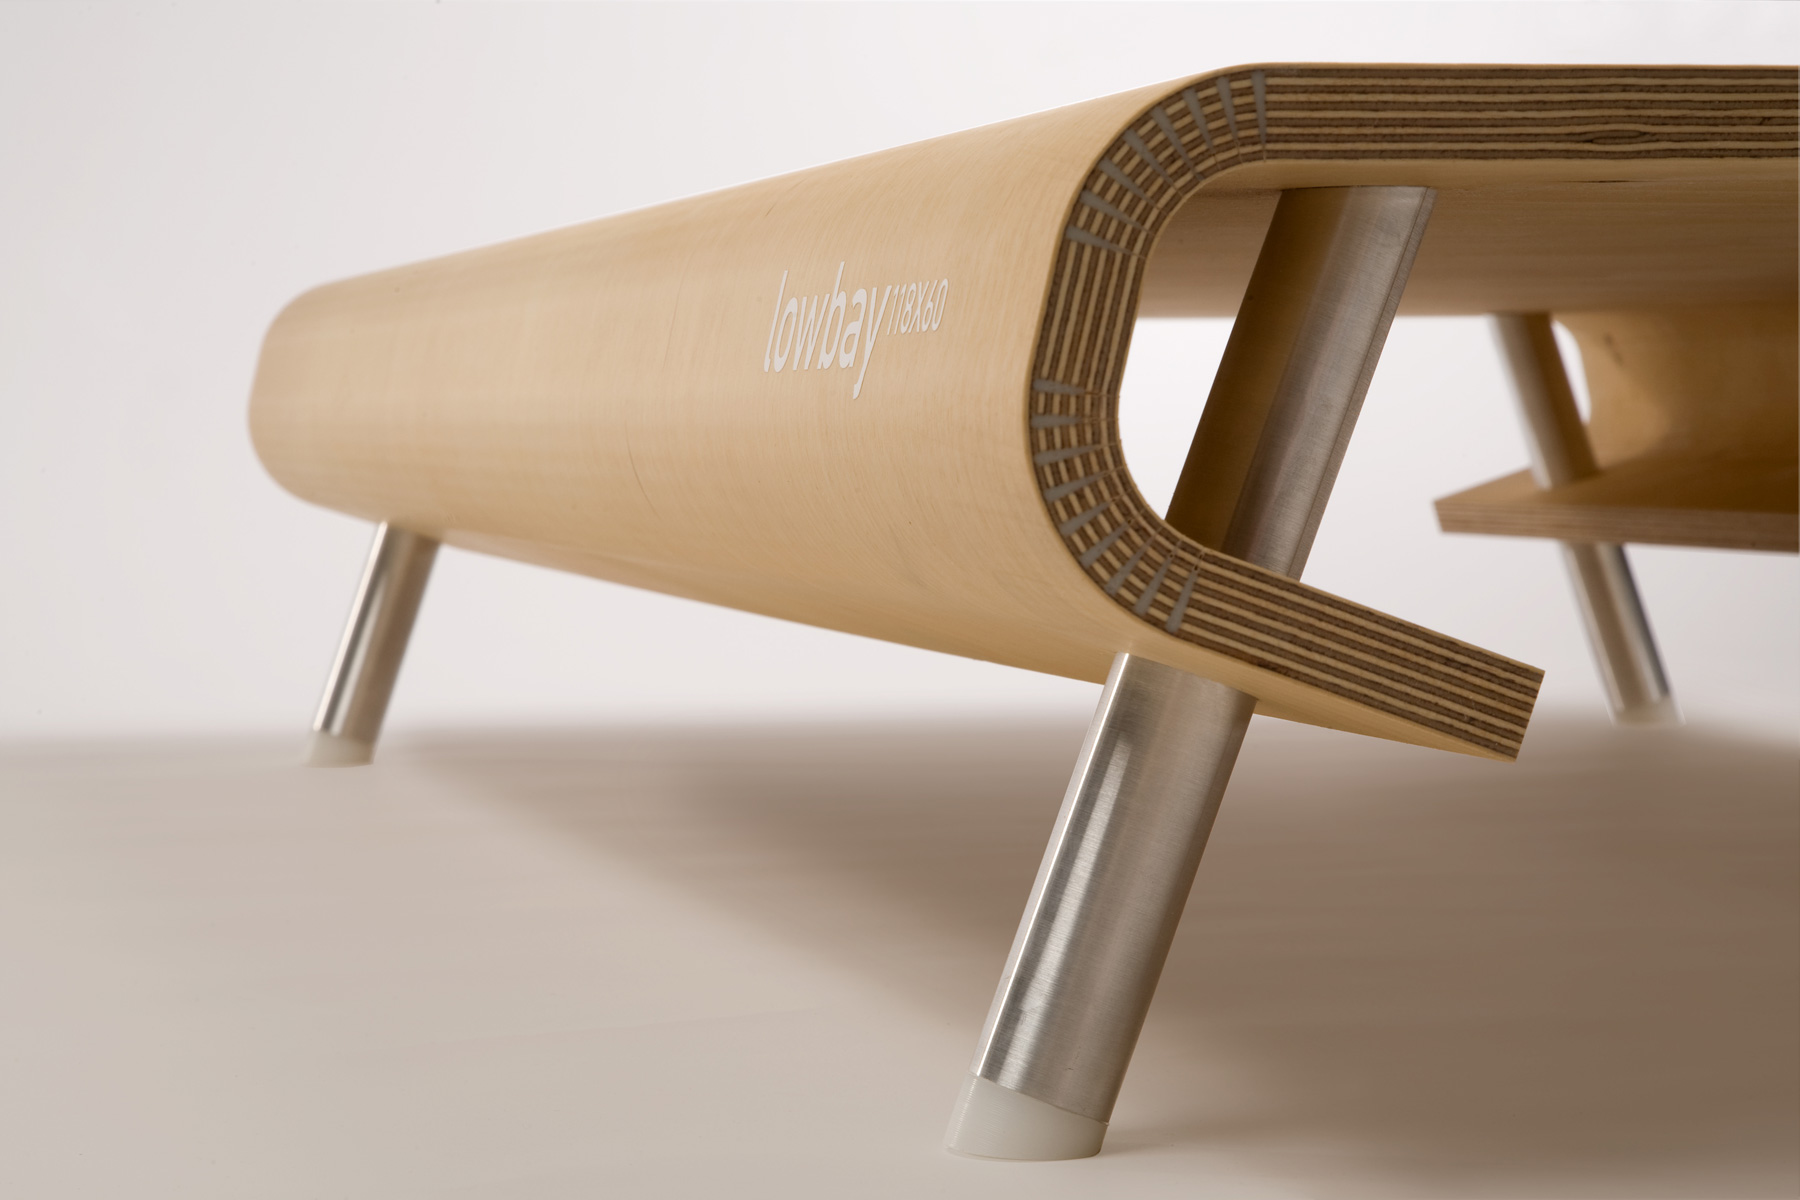 Lowbay Coffee Table by Han Koning